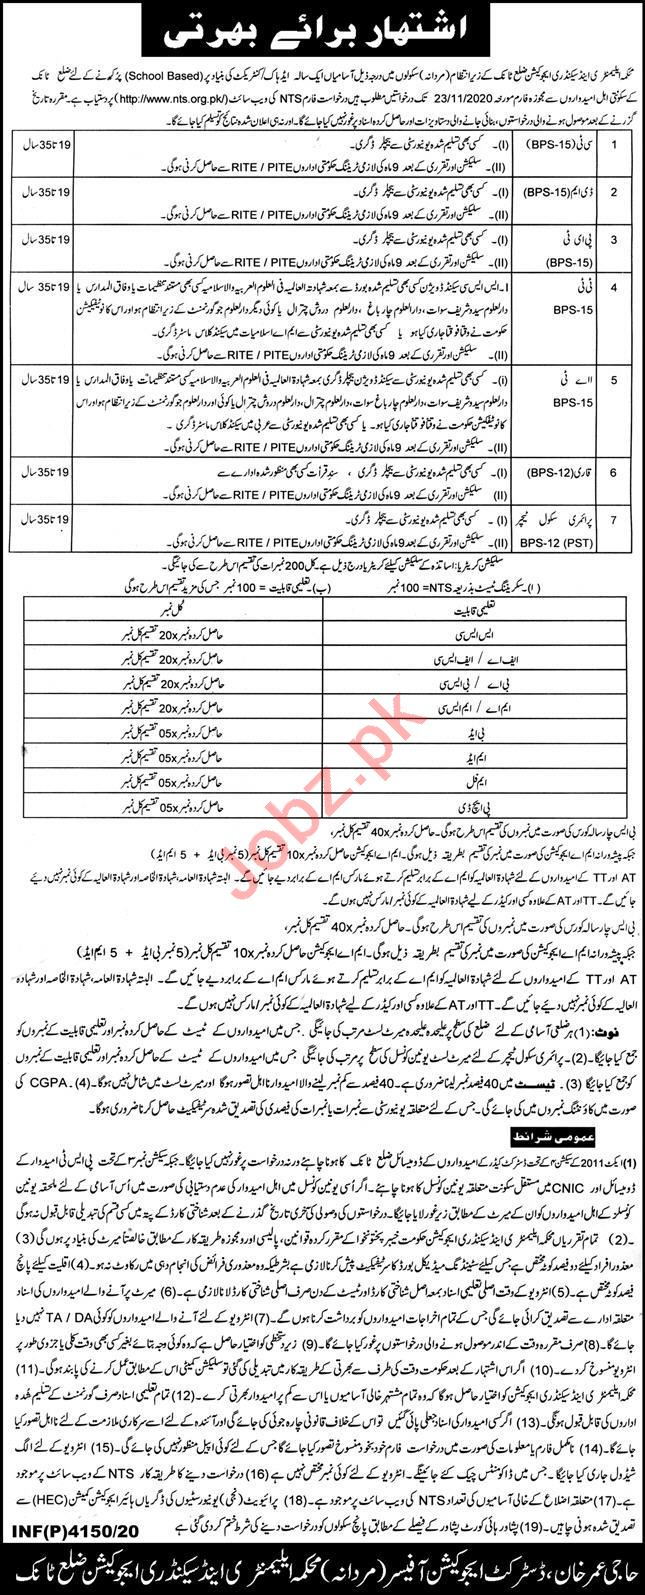 District Education Officer DEO Tank Jobs 2020 for Teachers